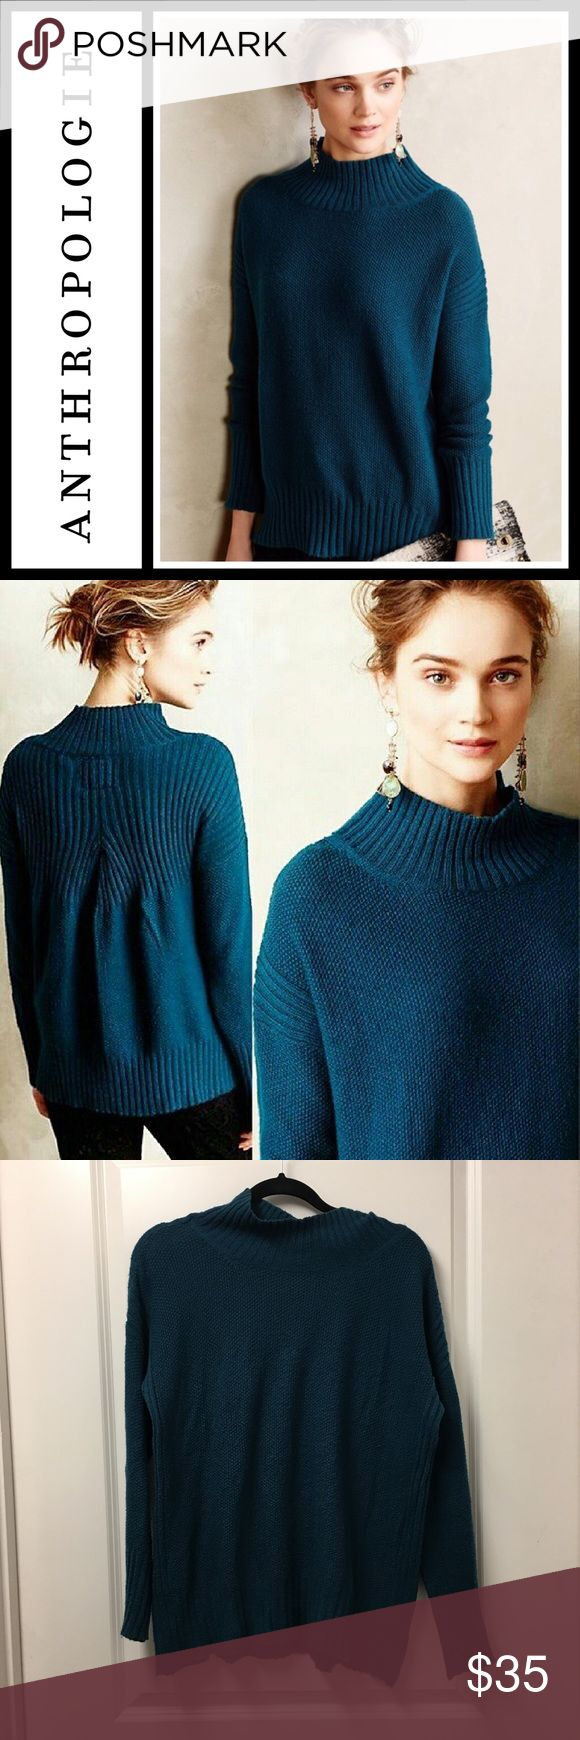 Anthropologie angels of the north aisla pullover GUC, pre loved and has very minor pilling - size small and runs big! Color is so pretty - from angels of the north anthropologie brand Anthropologie Sweaters Cowl & Turtlenecks